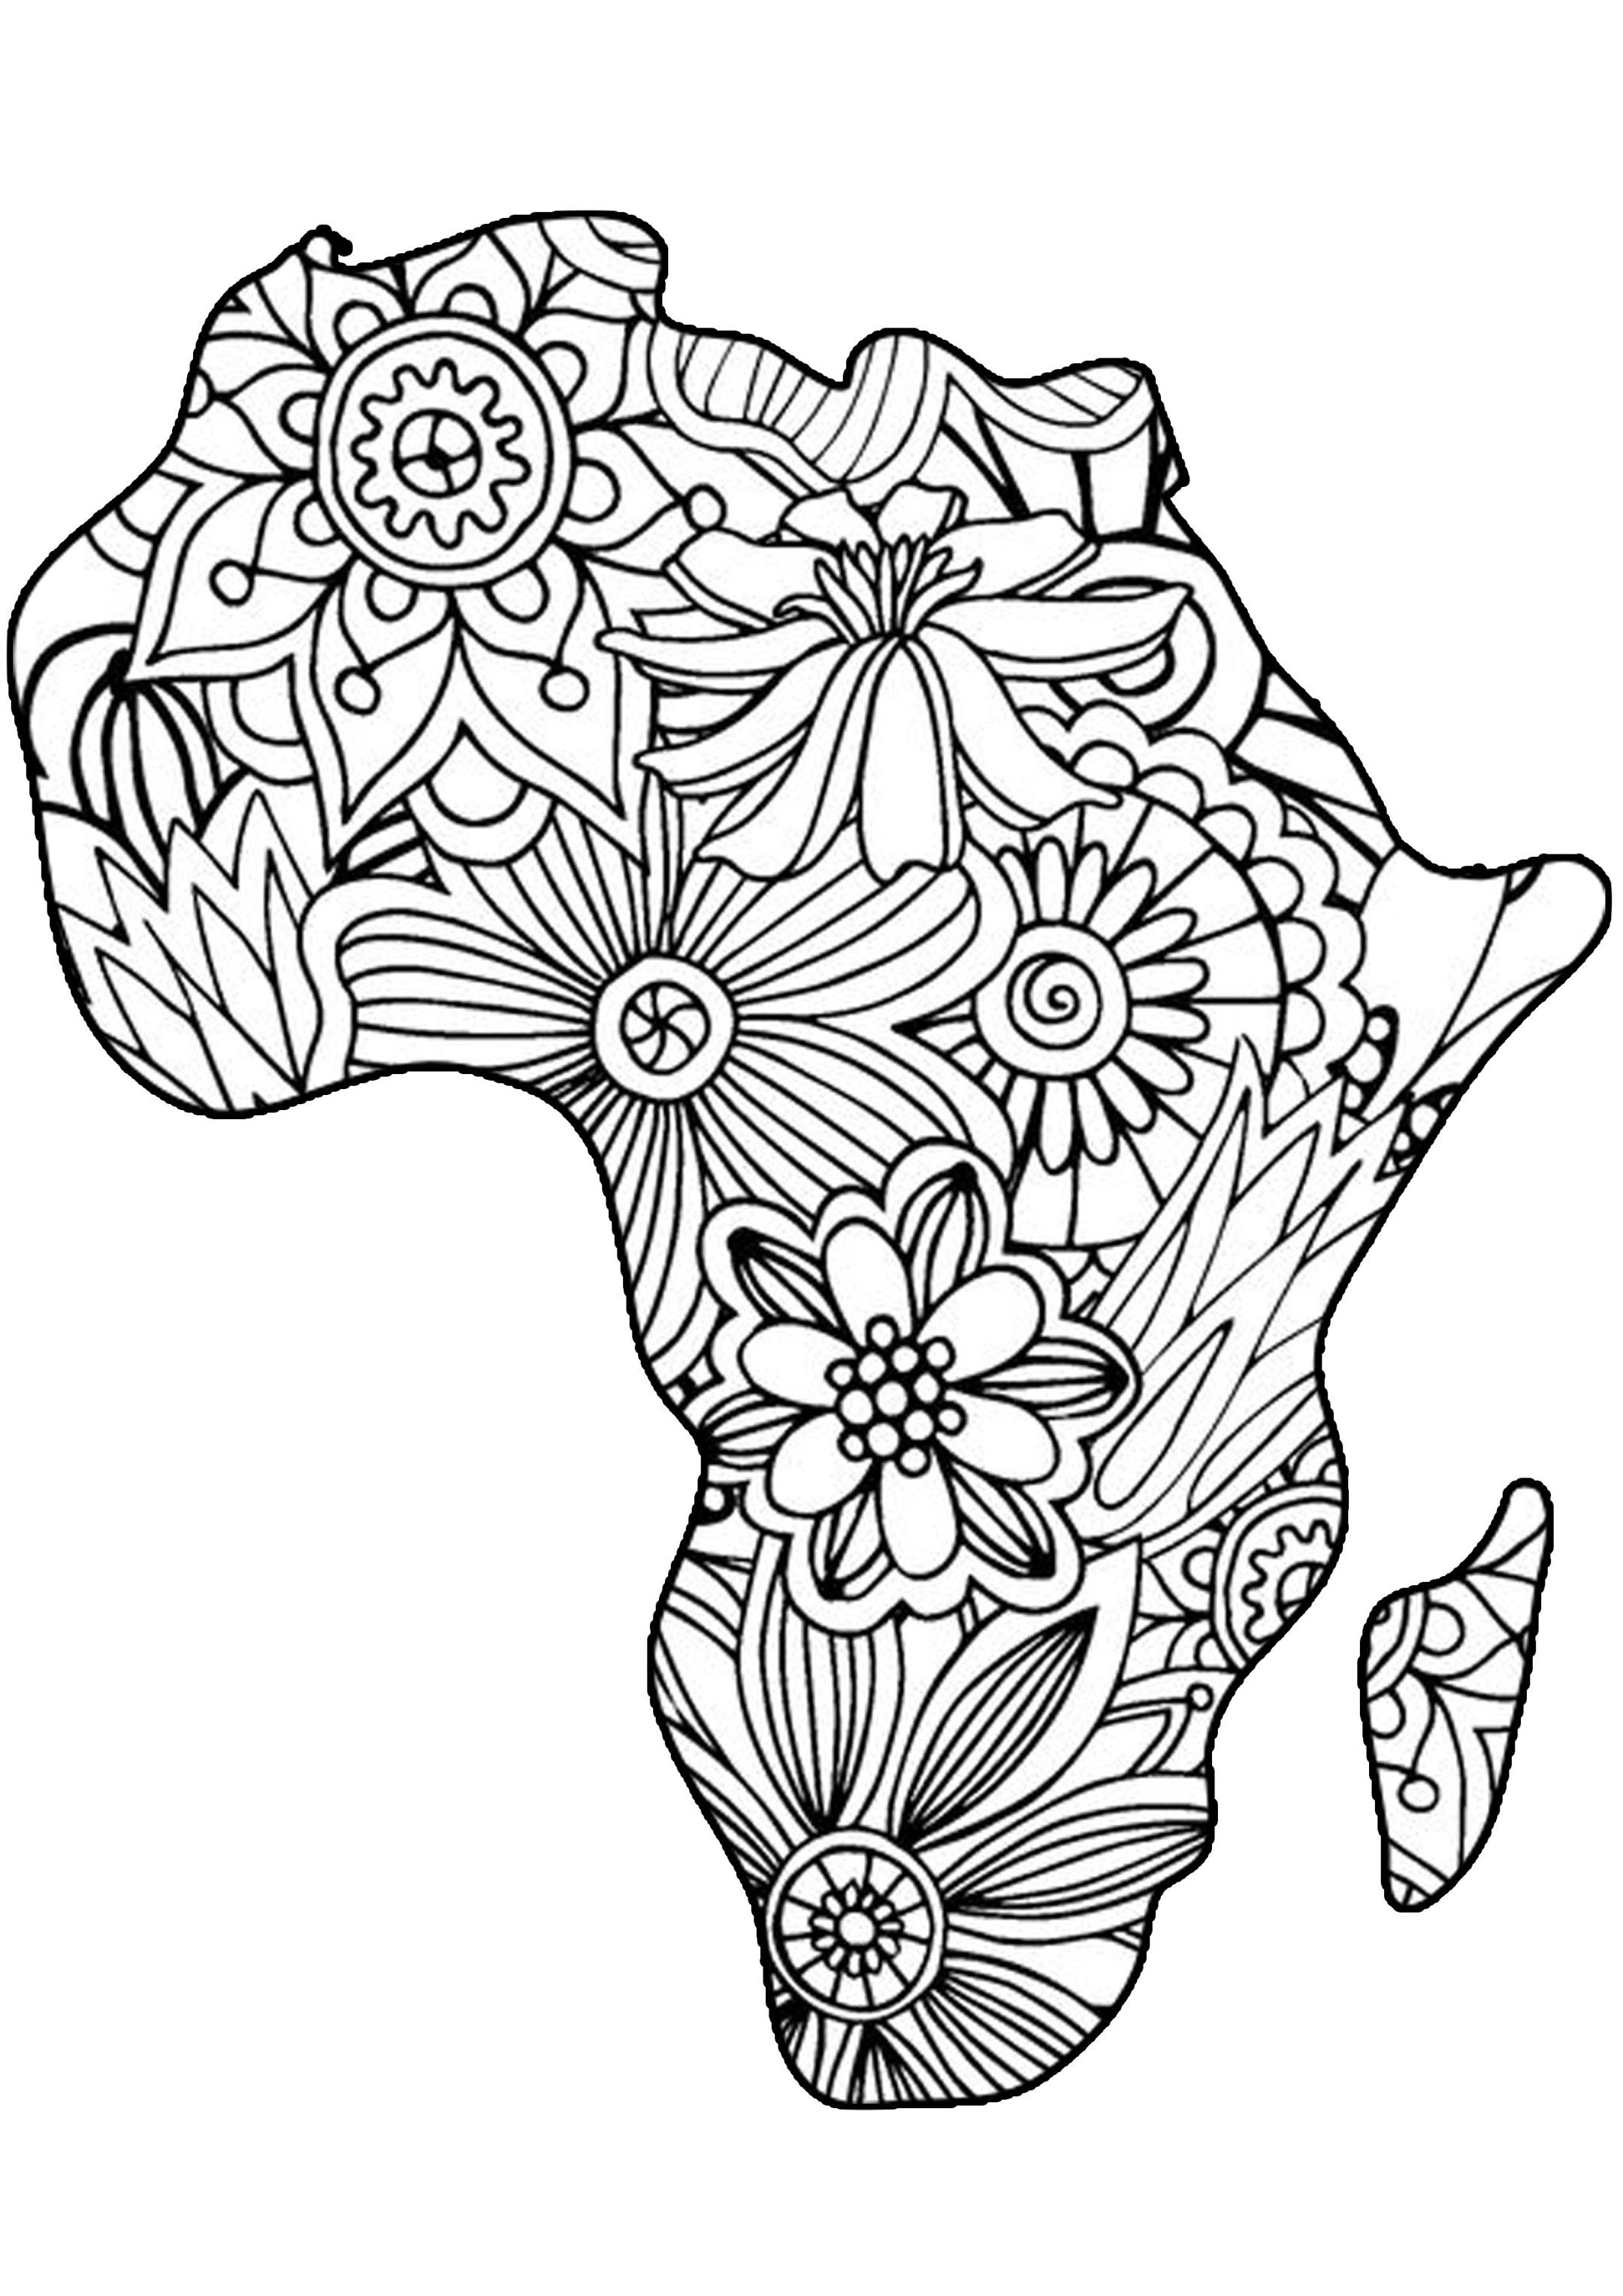 Adult Coloring Pages Africa Lola Ryan Pinterest